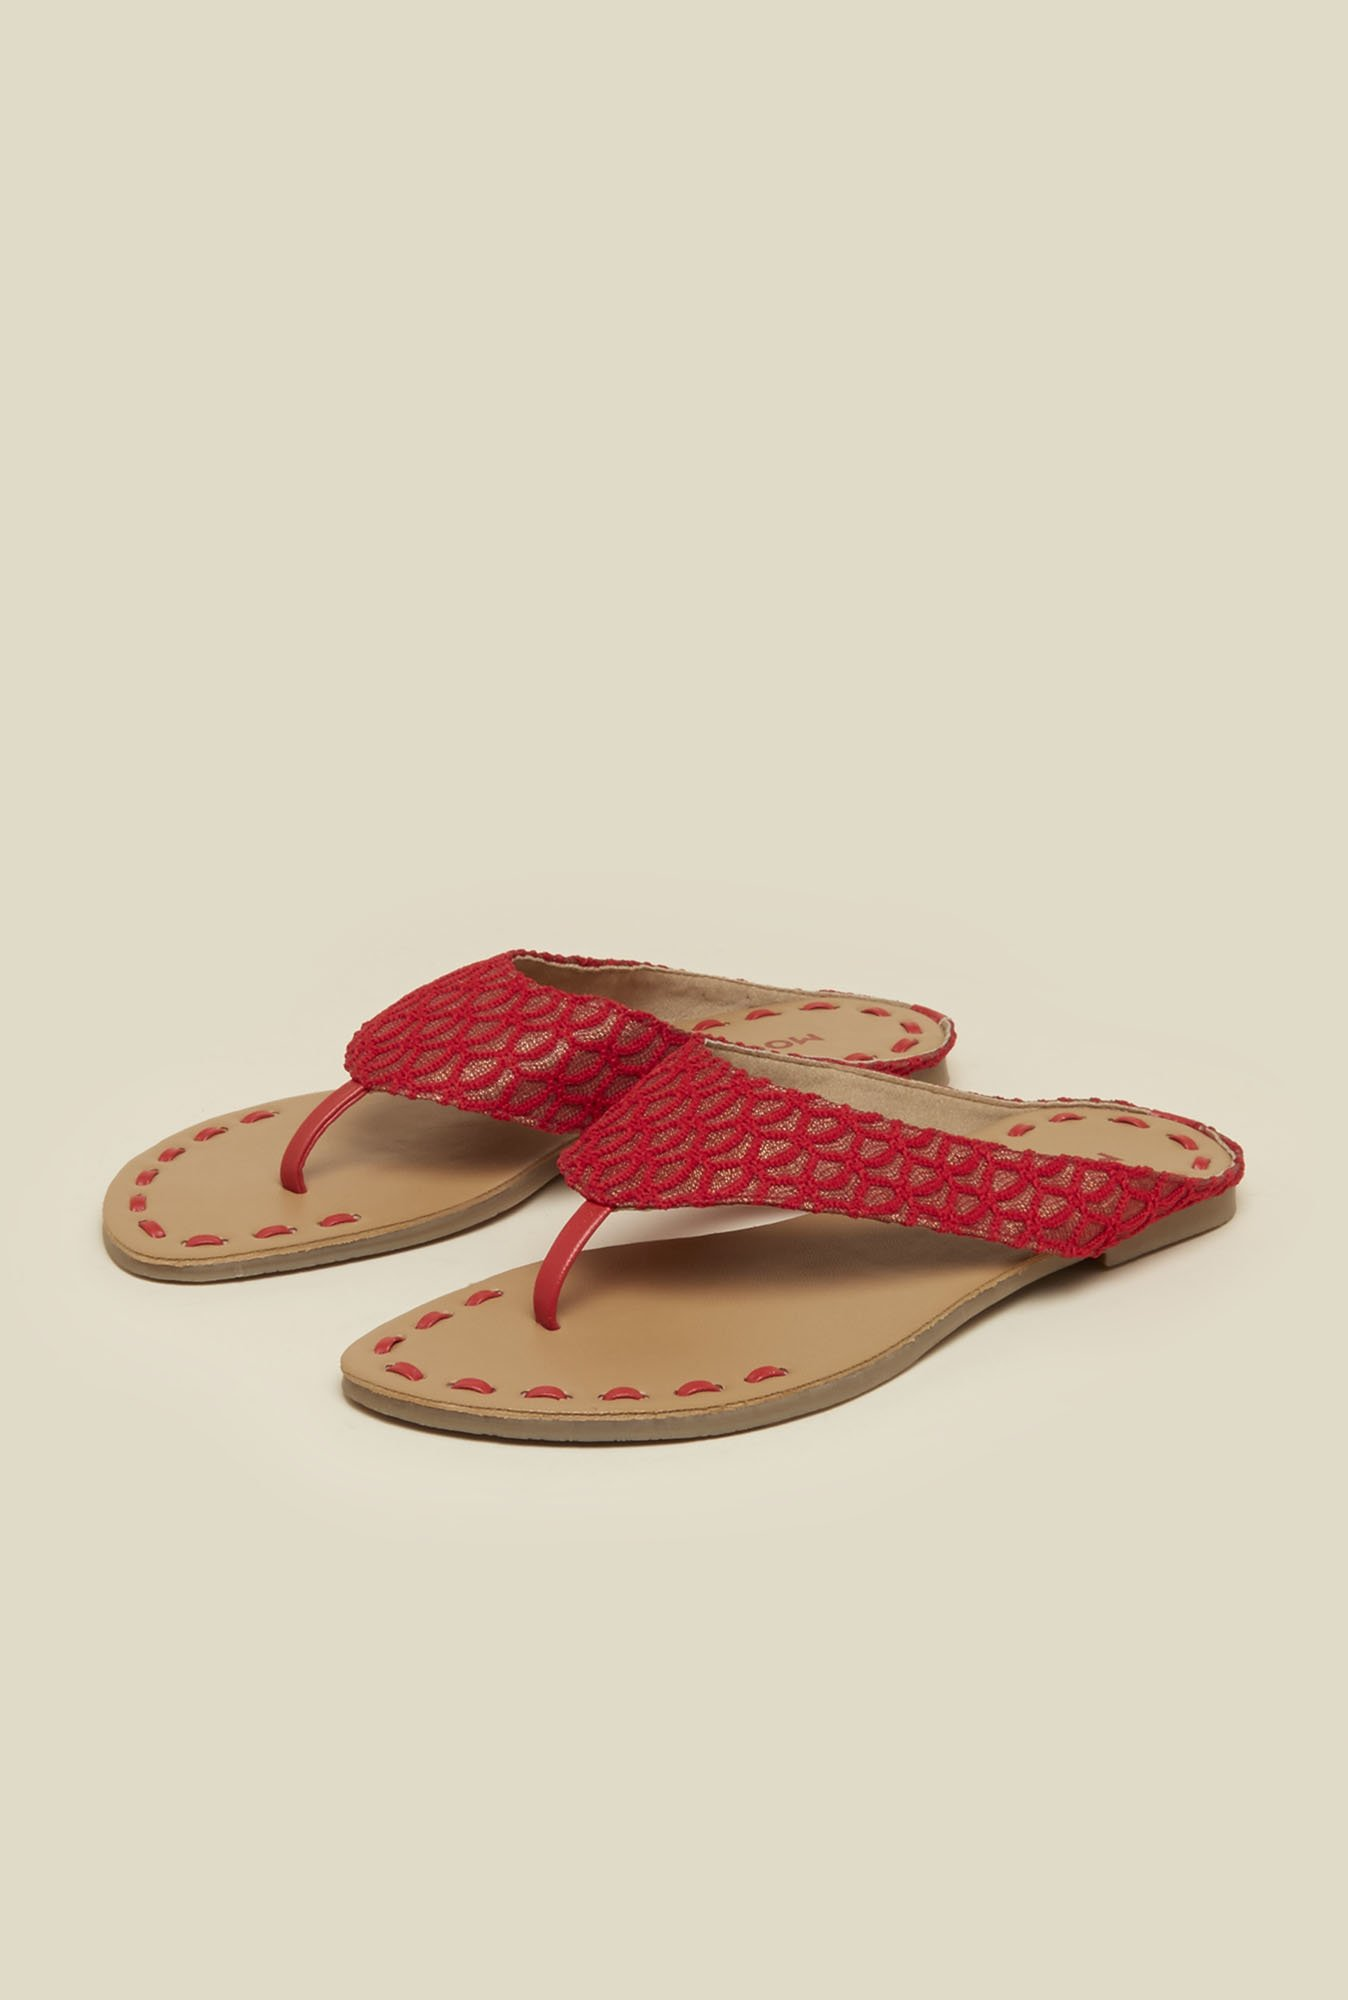 Mochi Red Lace Thong Sandals